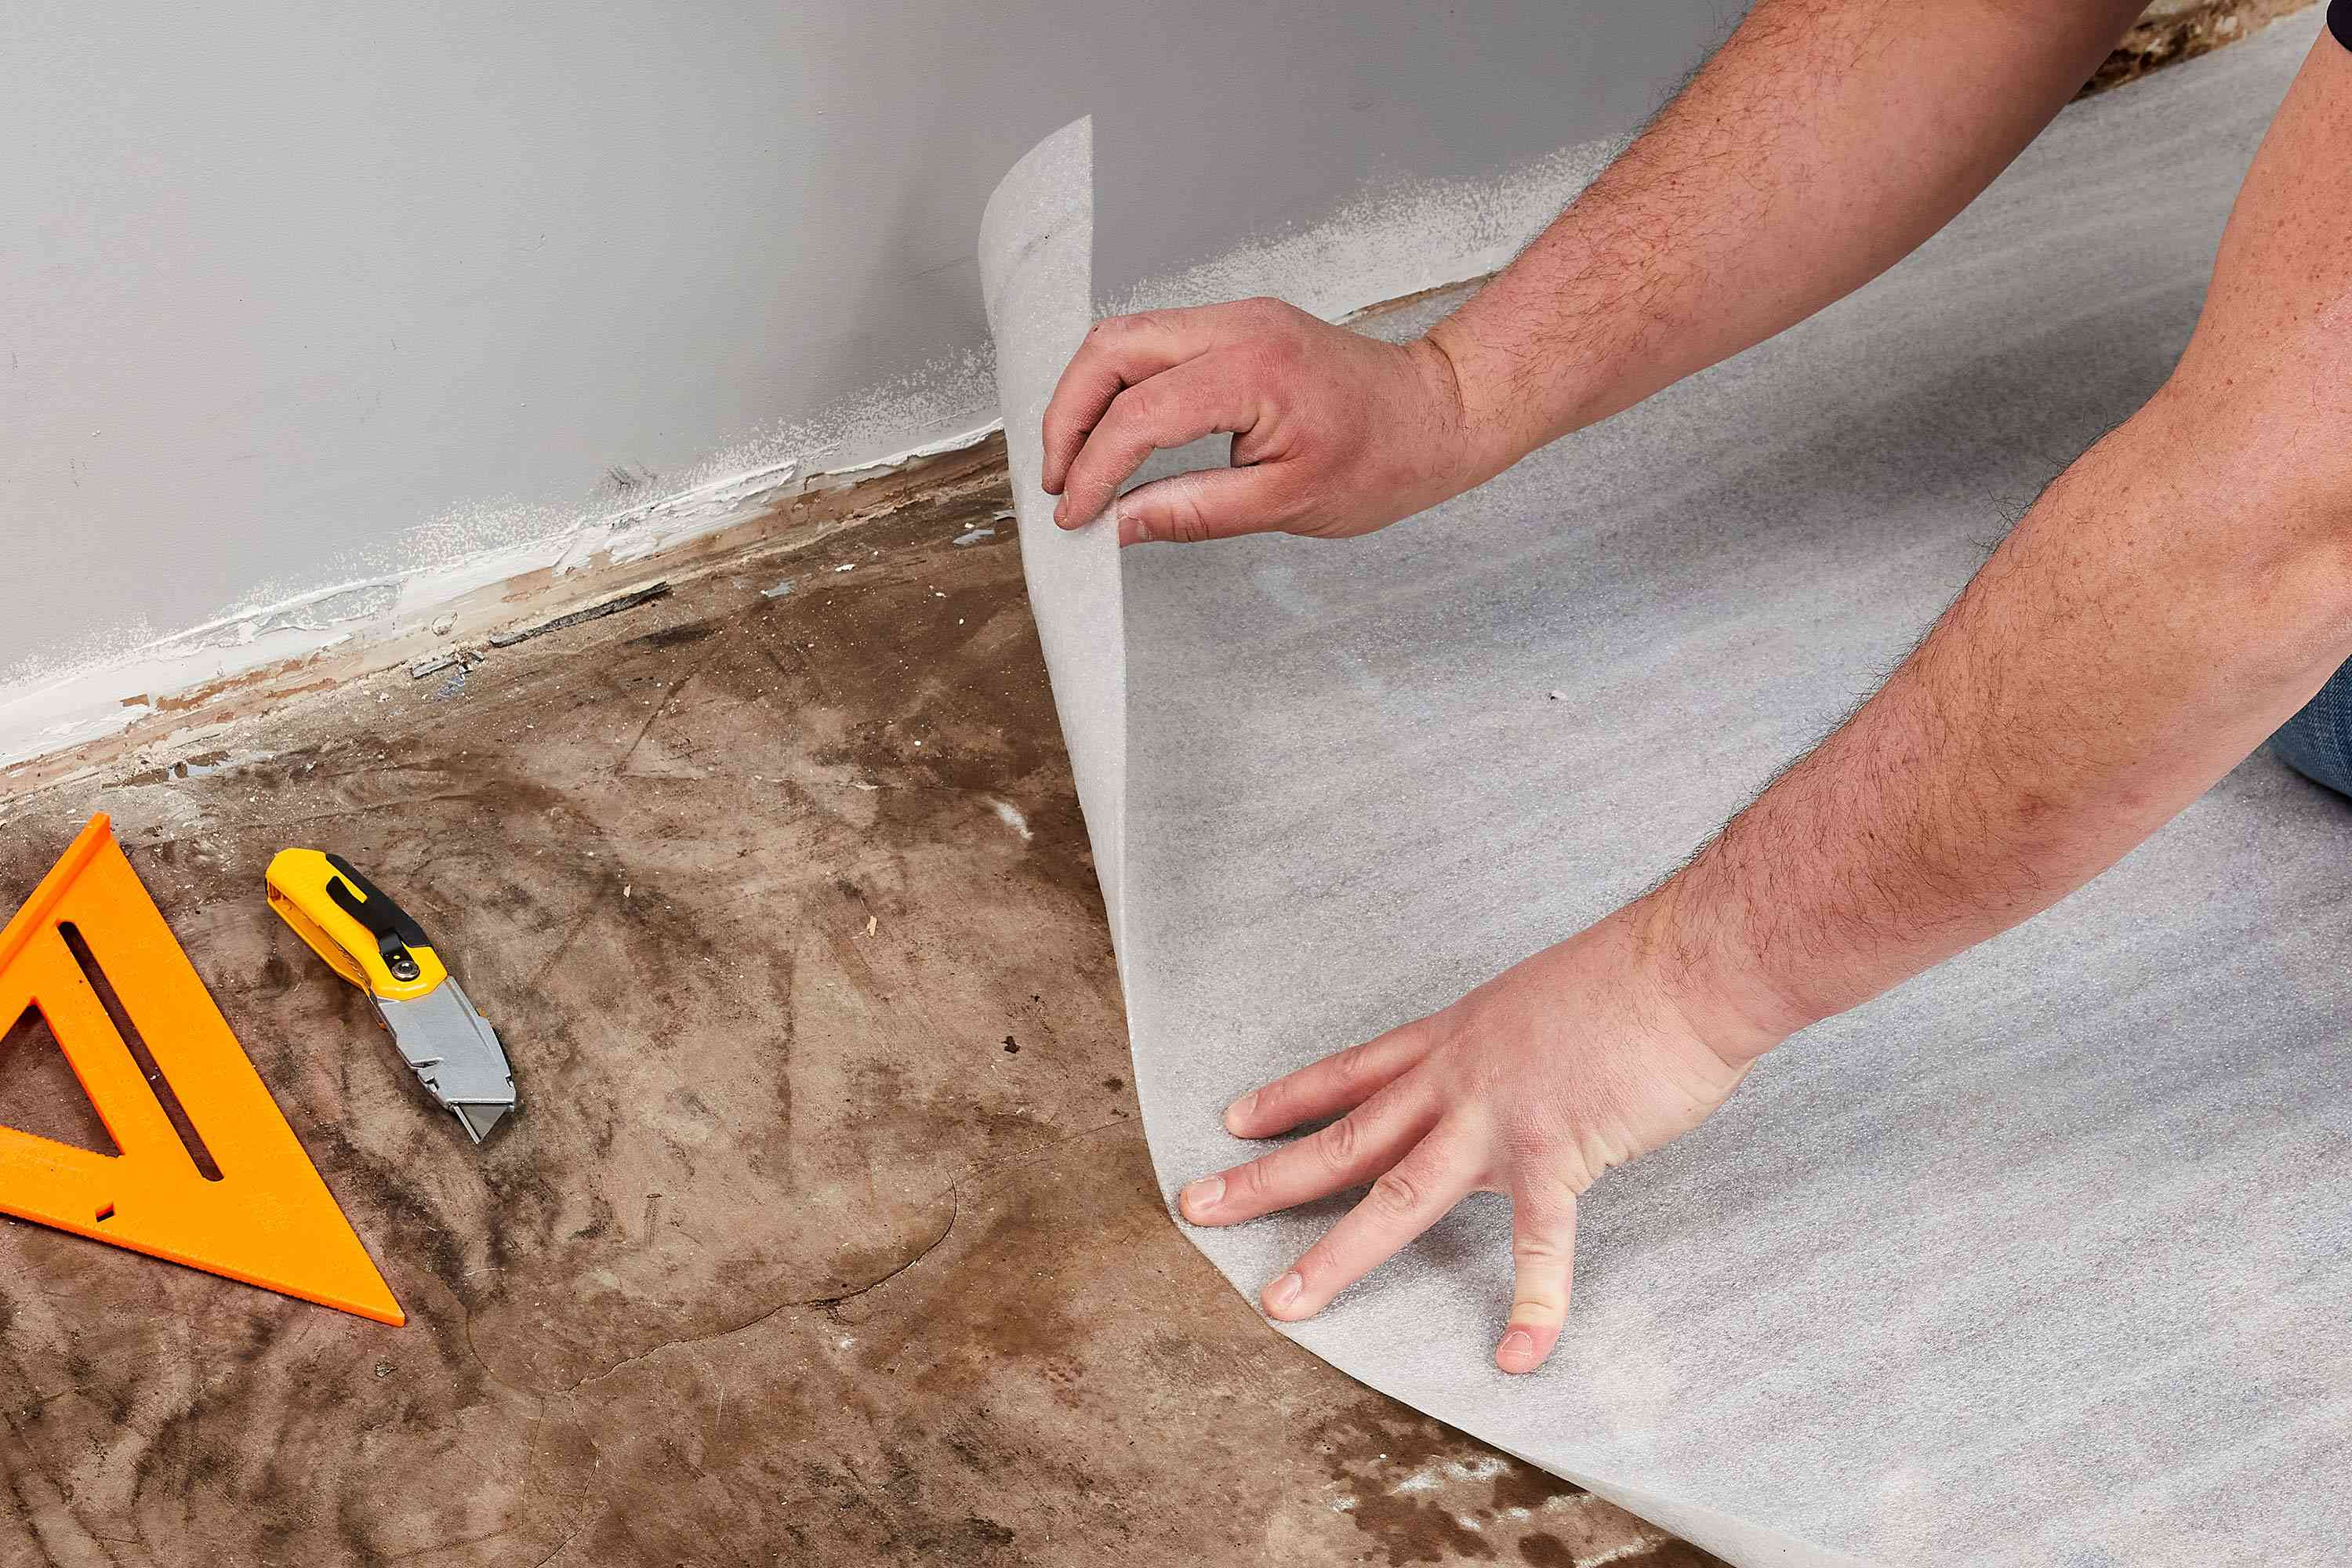 Underlayment being laid out on subfloor